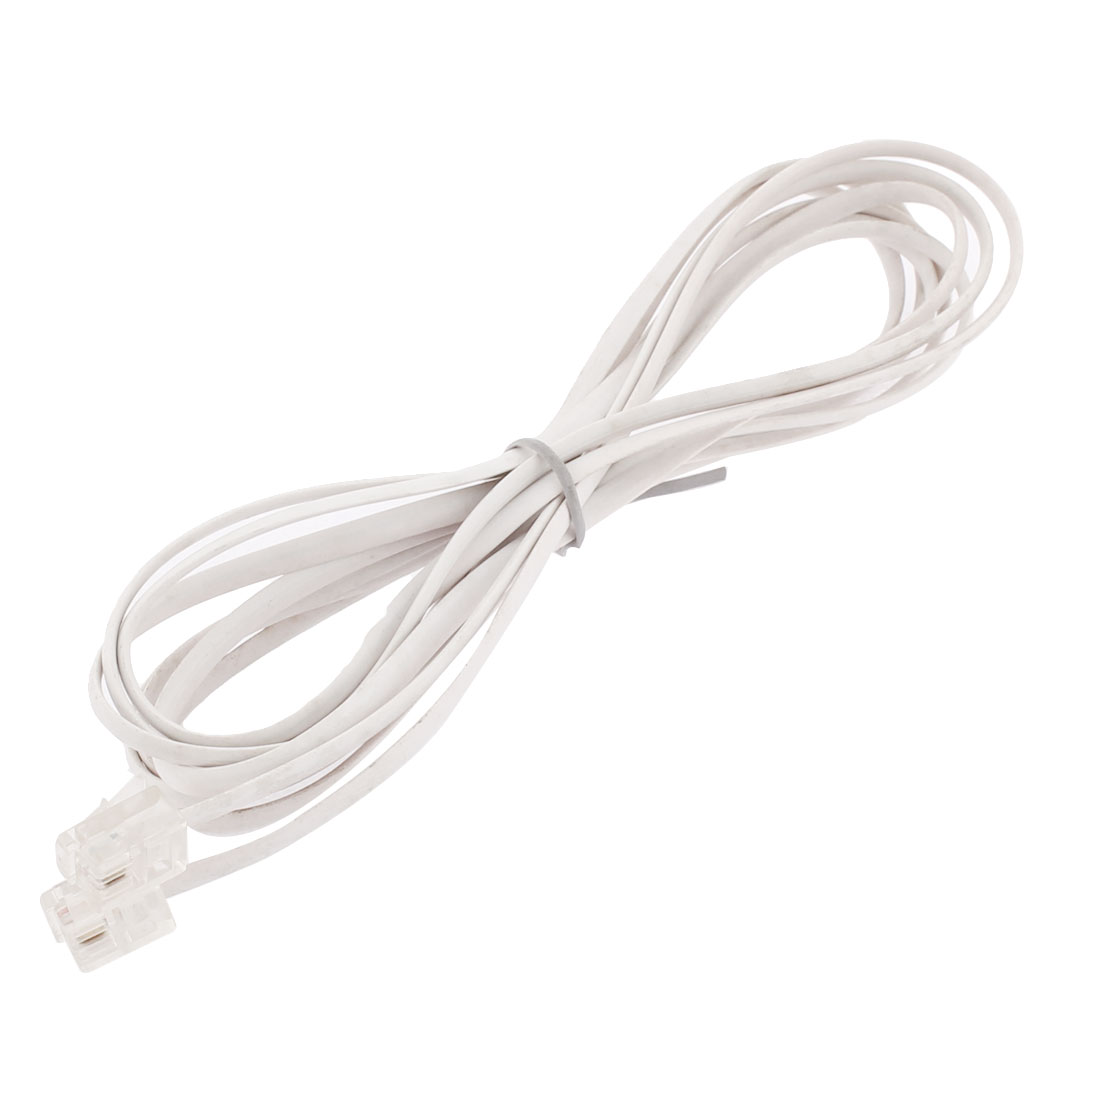 RJ11 to RJ11 Male to Male Telephone Cord Cable Connector White 2.5m Long